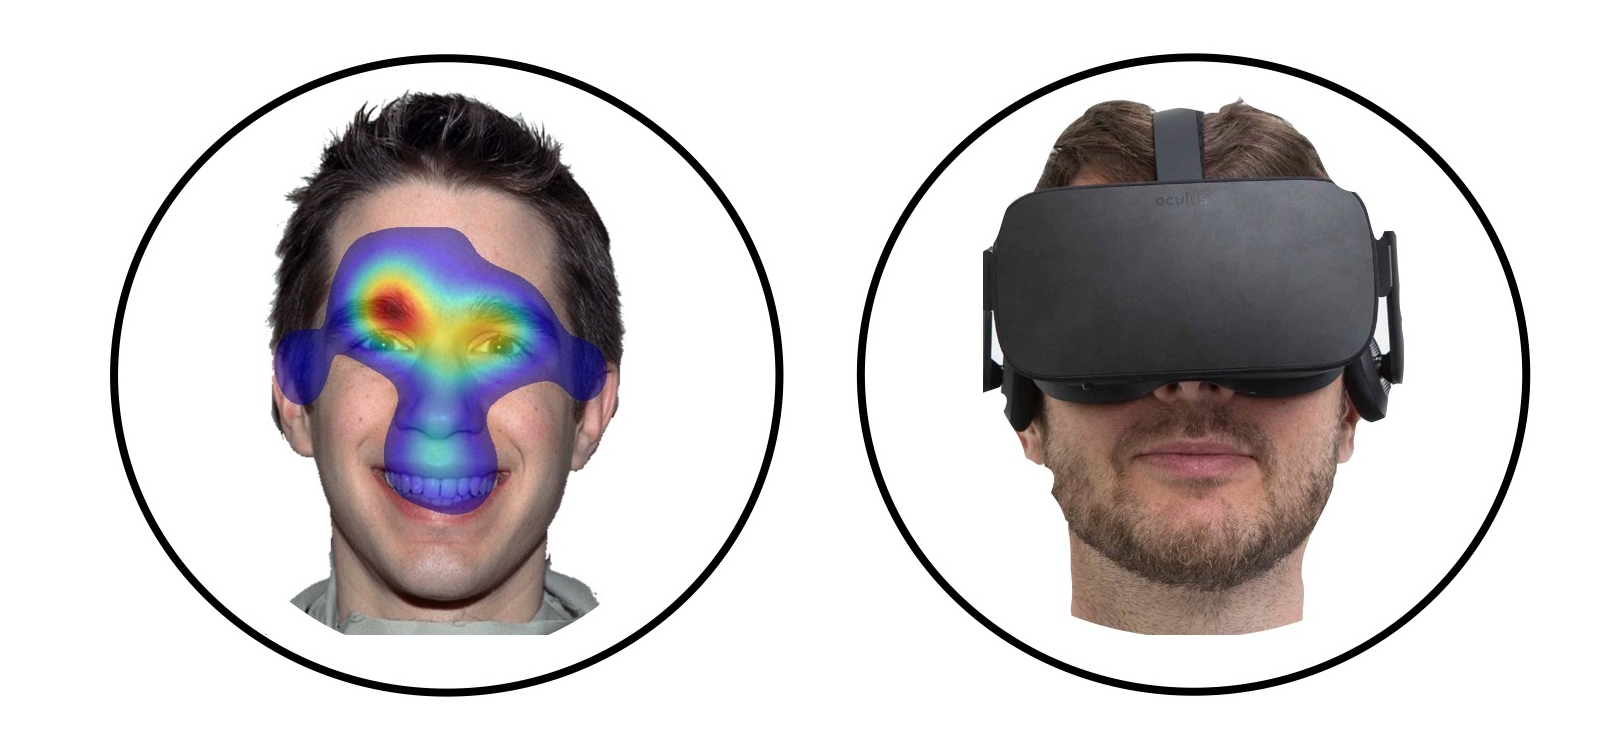 Eye tracking (left) shows that the most important area we pay attention to during face to face interaction is the same area largely covered by the HMD (right)